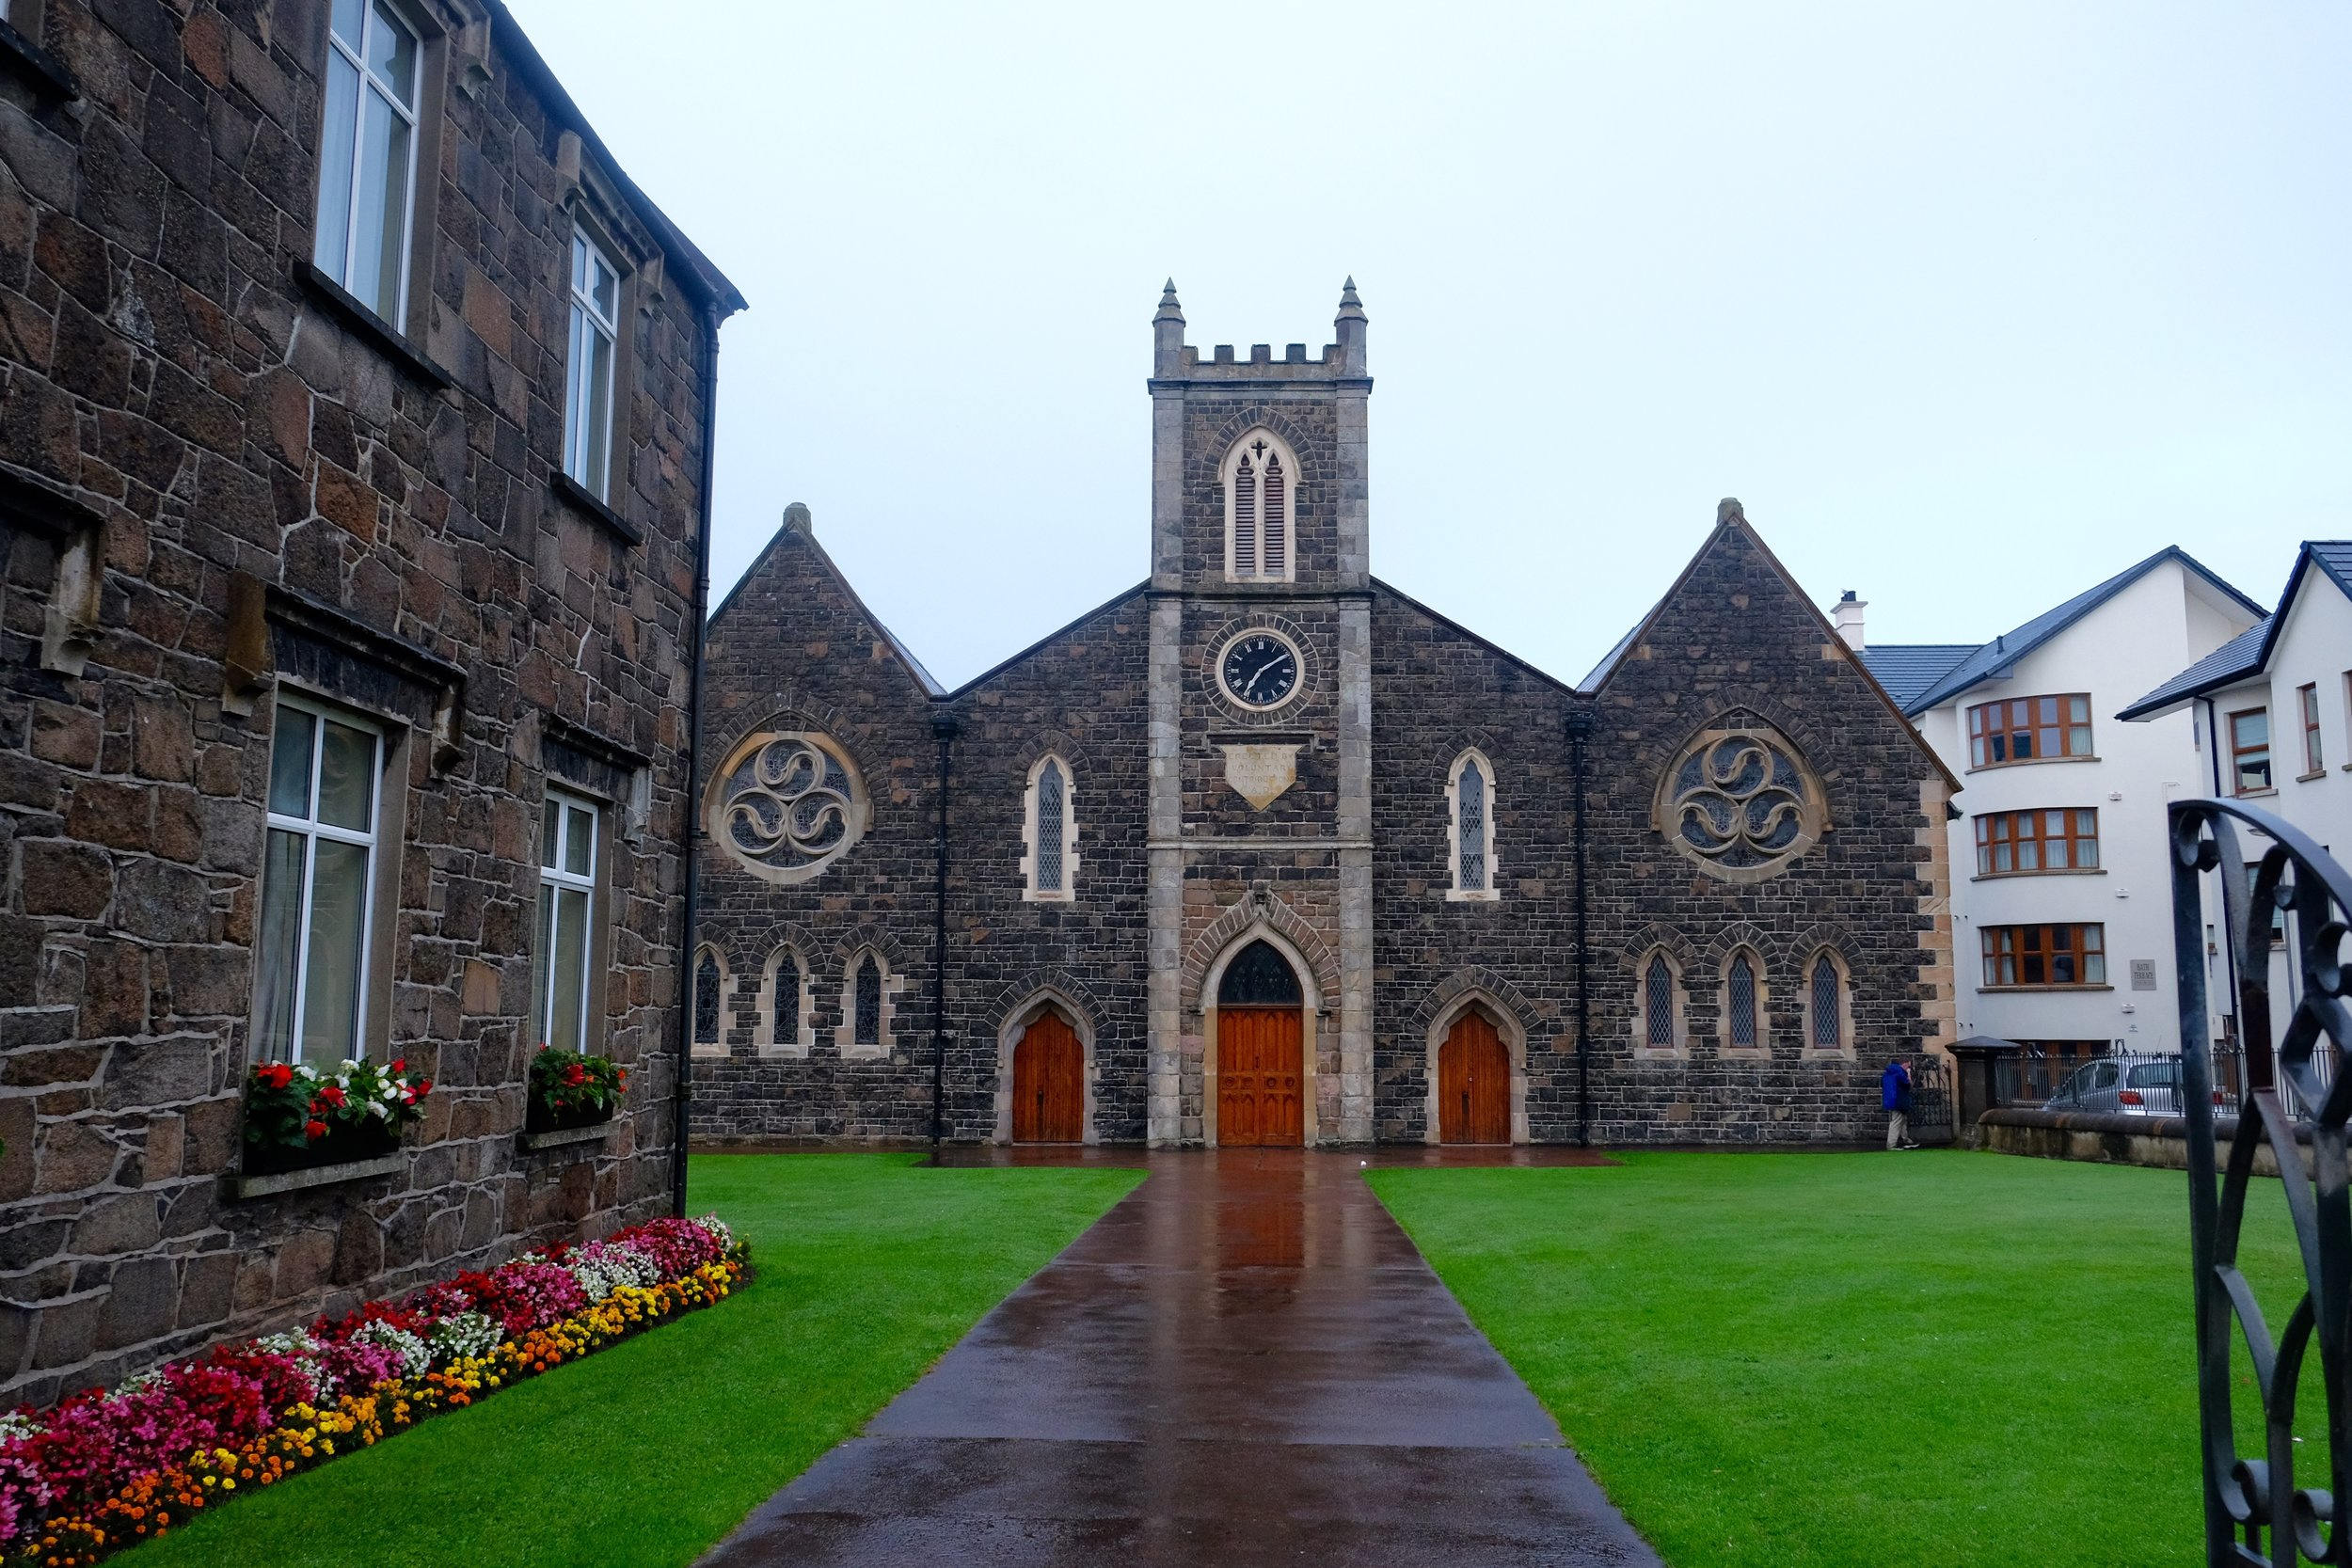 Holy Trinity Church. Placed right next to three other churches of varying origin. This is Northern Ireland.